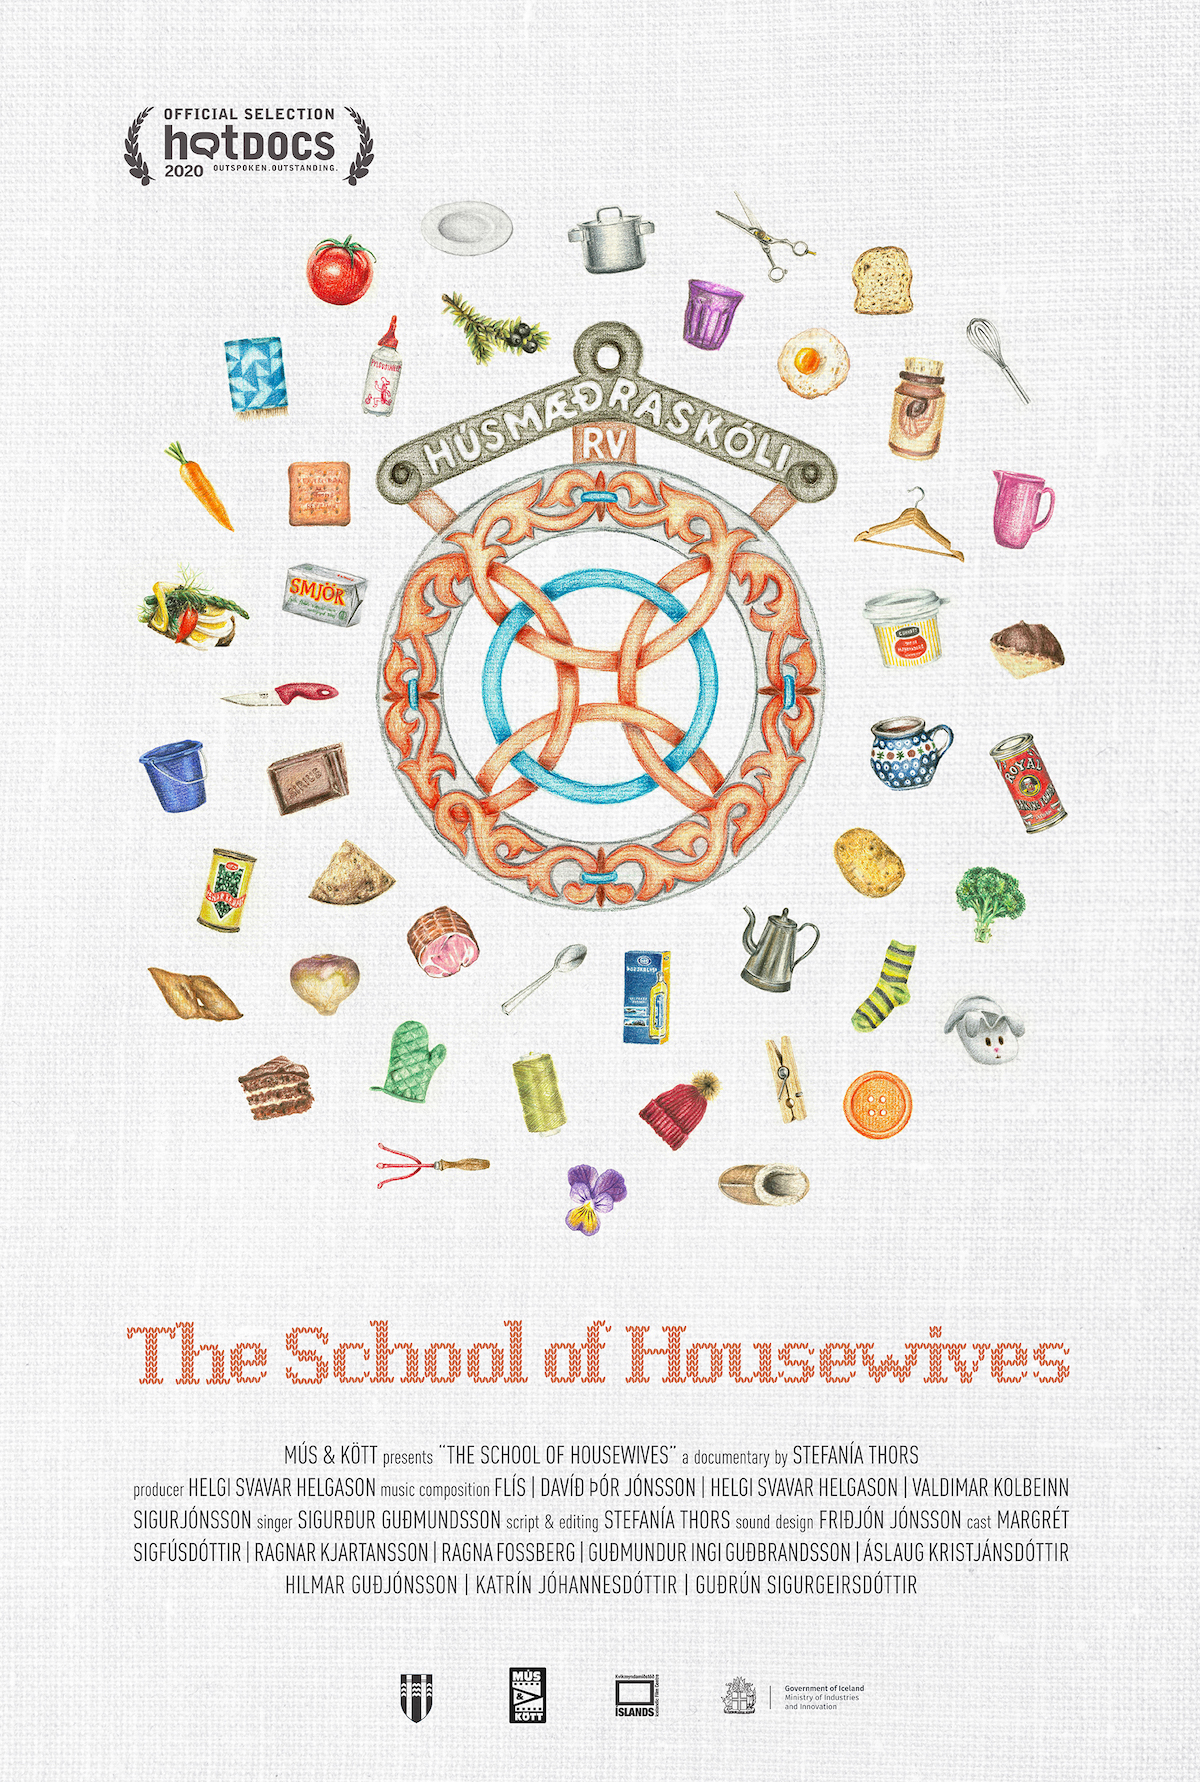 The School of Housewives